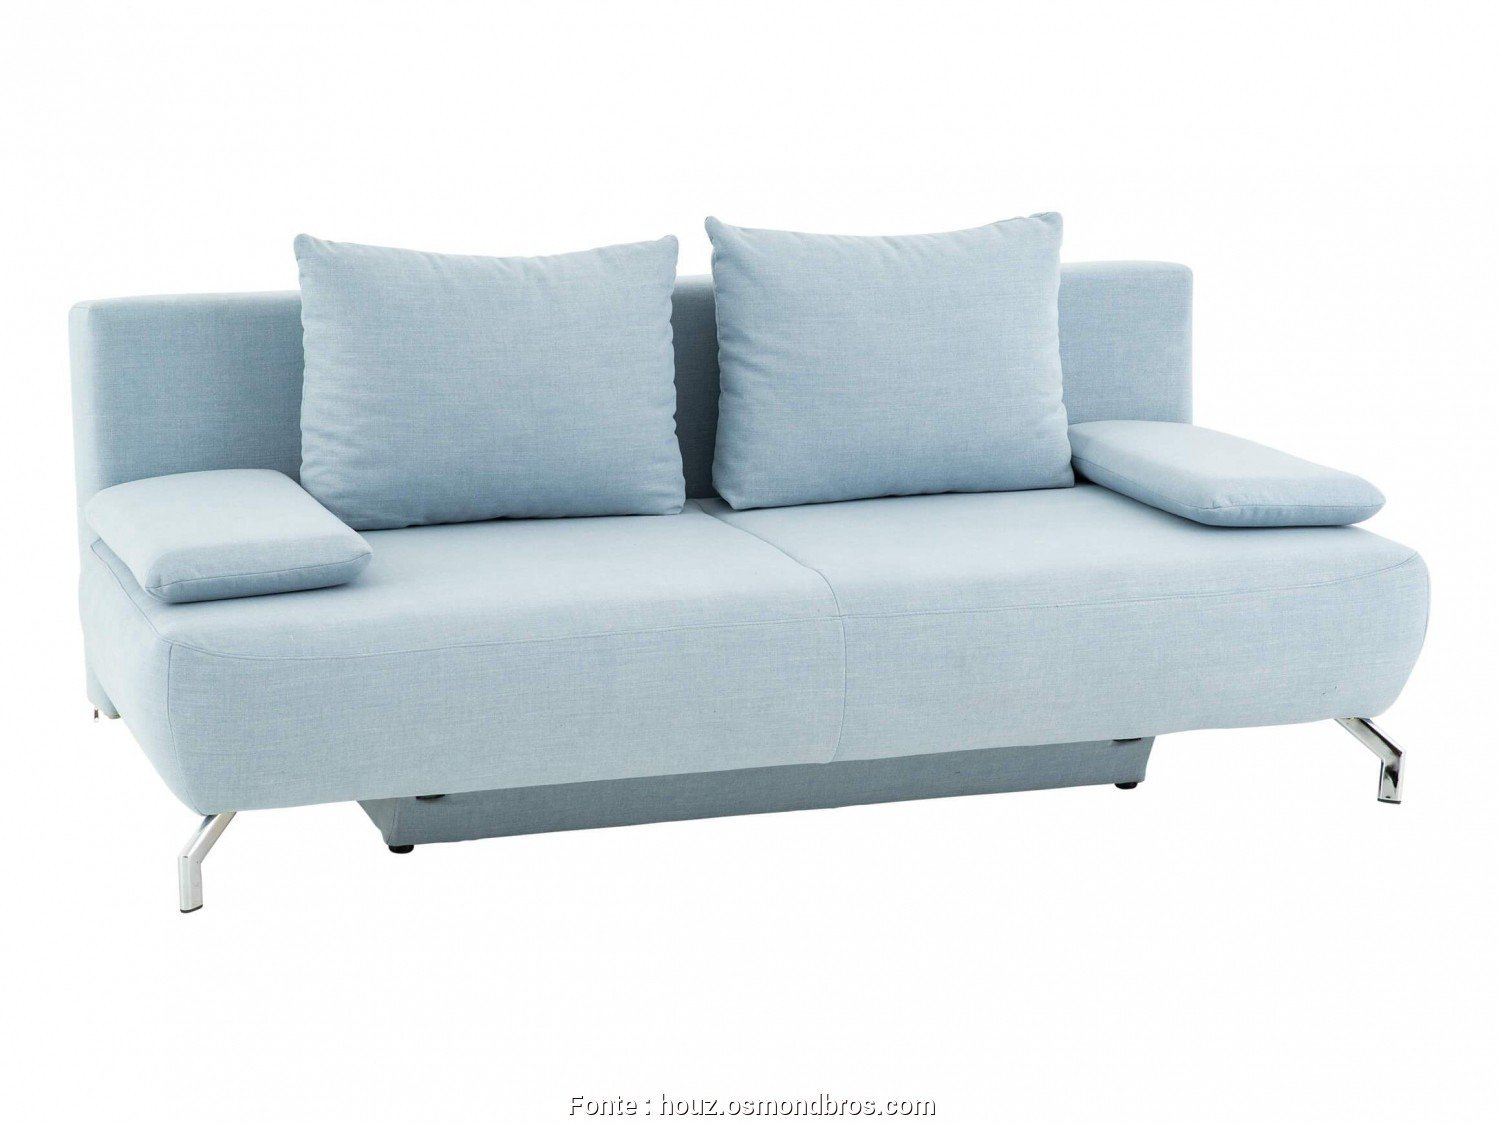 Bettsofa Ikea Beddinge Favoloso 5 Ikea Beddinge Bettkasten Anleitung Keever For Congress